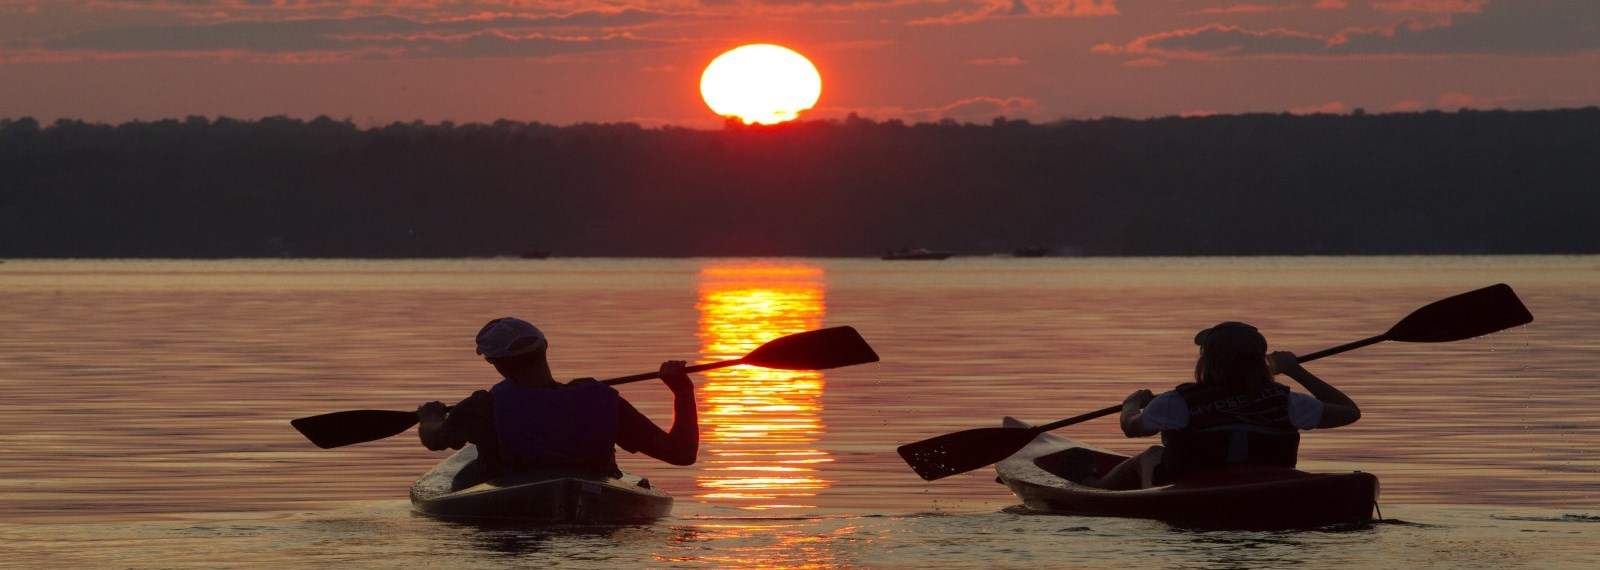 people on the lake during a sunset in their canoes